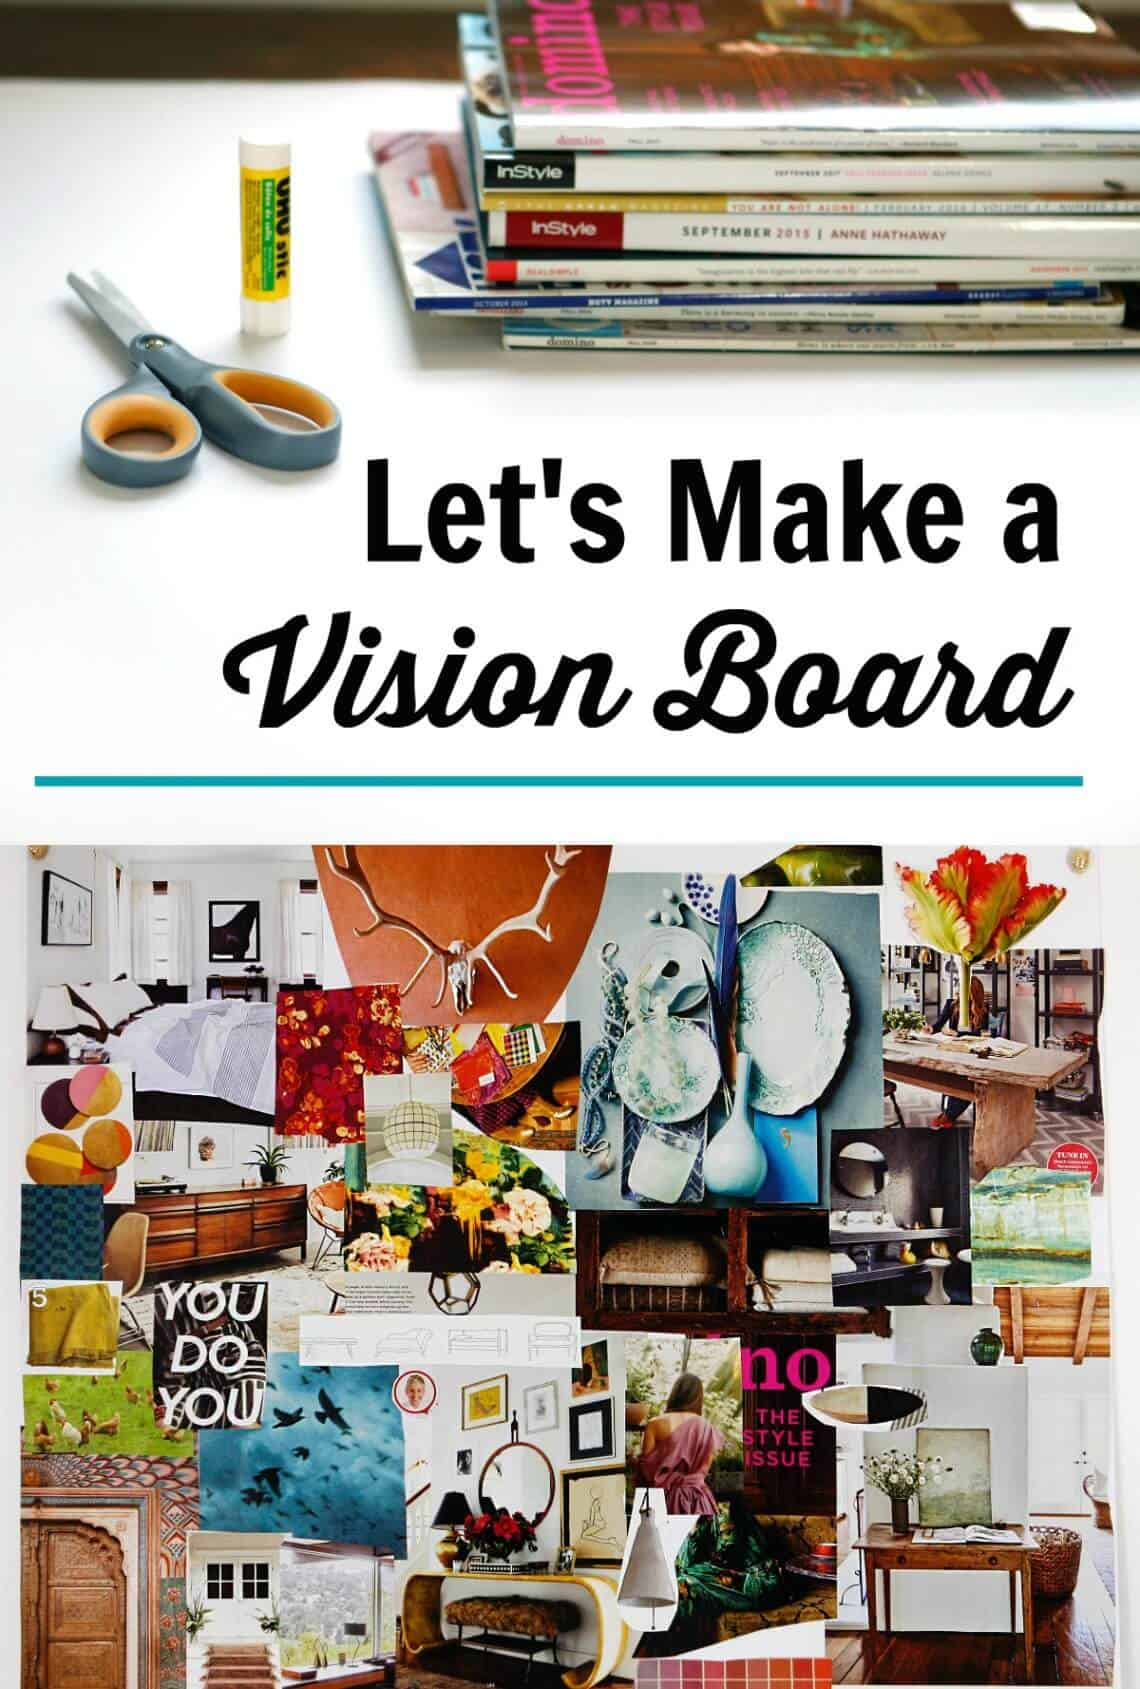 Learn to make a vision board that really works for you - use it as part of your daily routine #visionboard